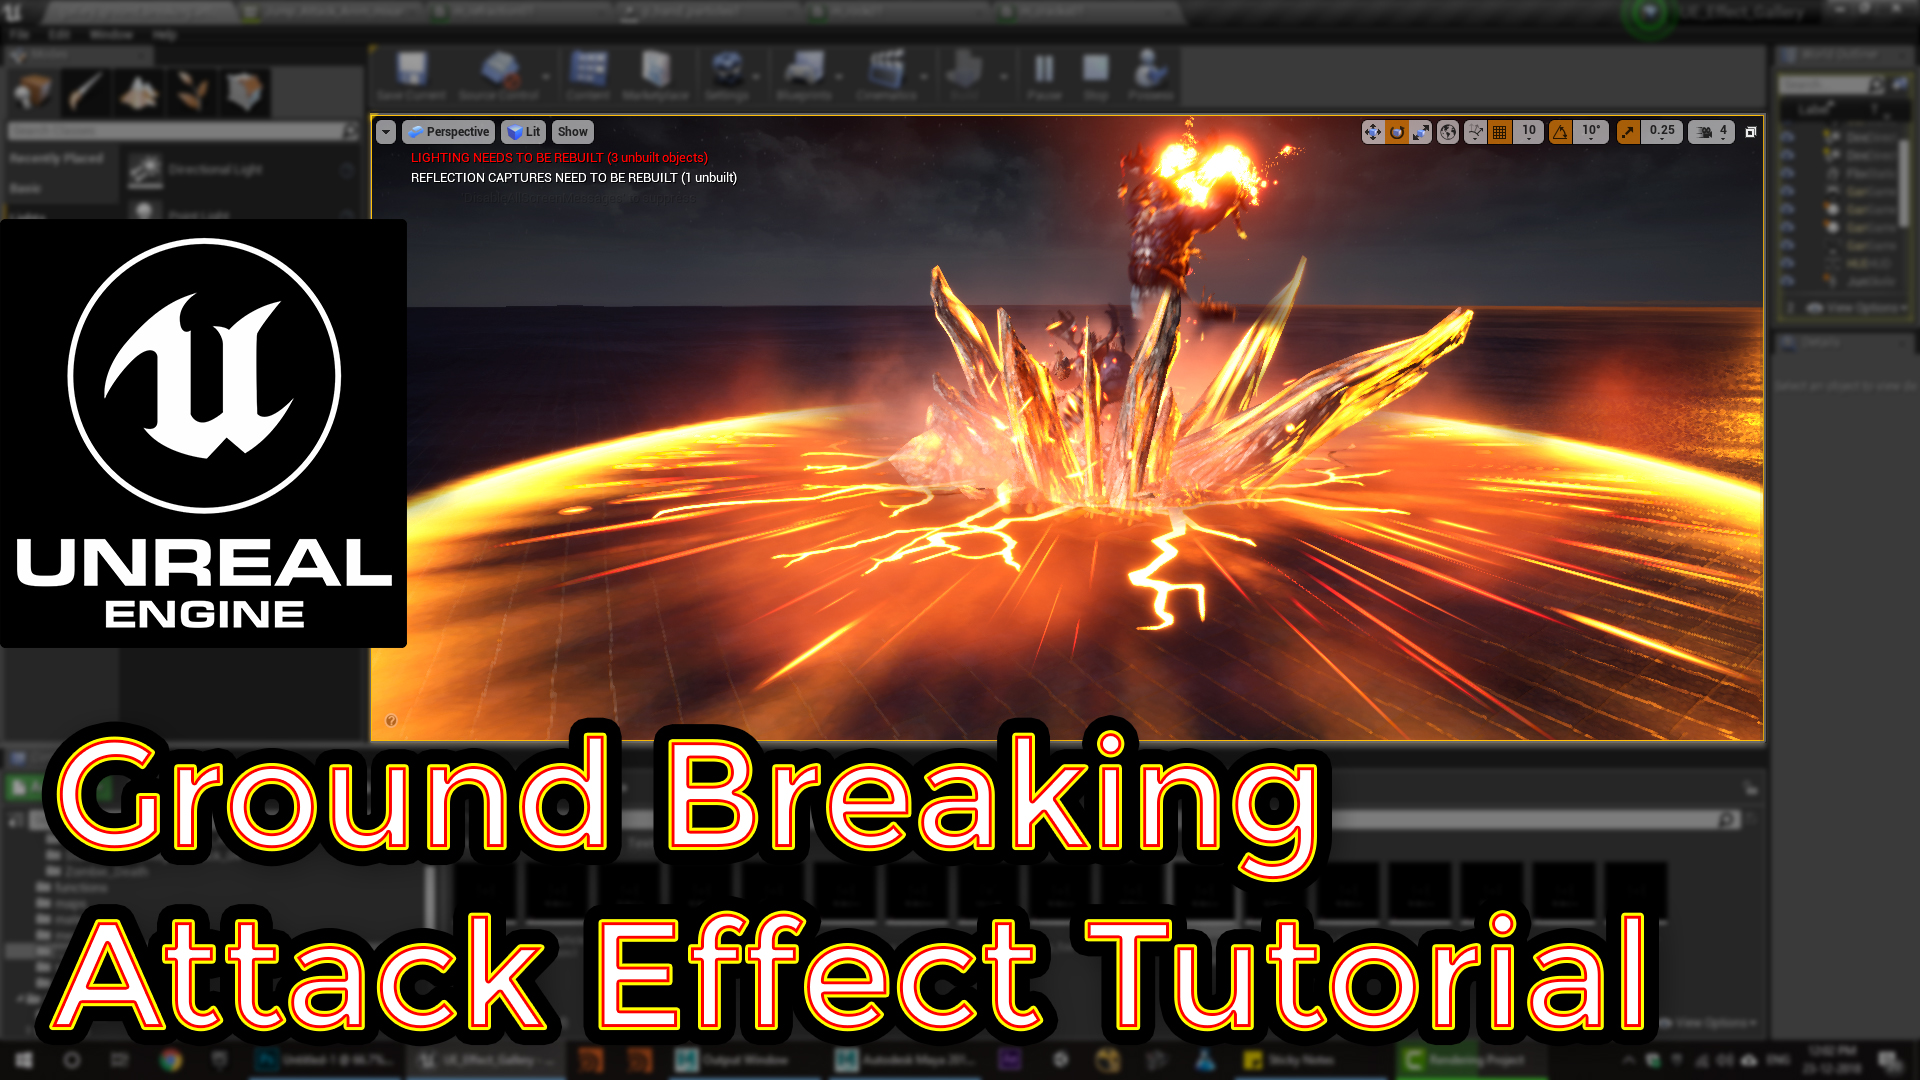 Unreal Engine VFX Tutorials - Real Time VFX